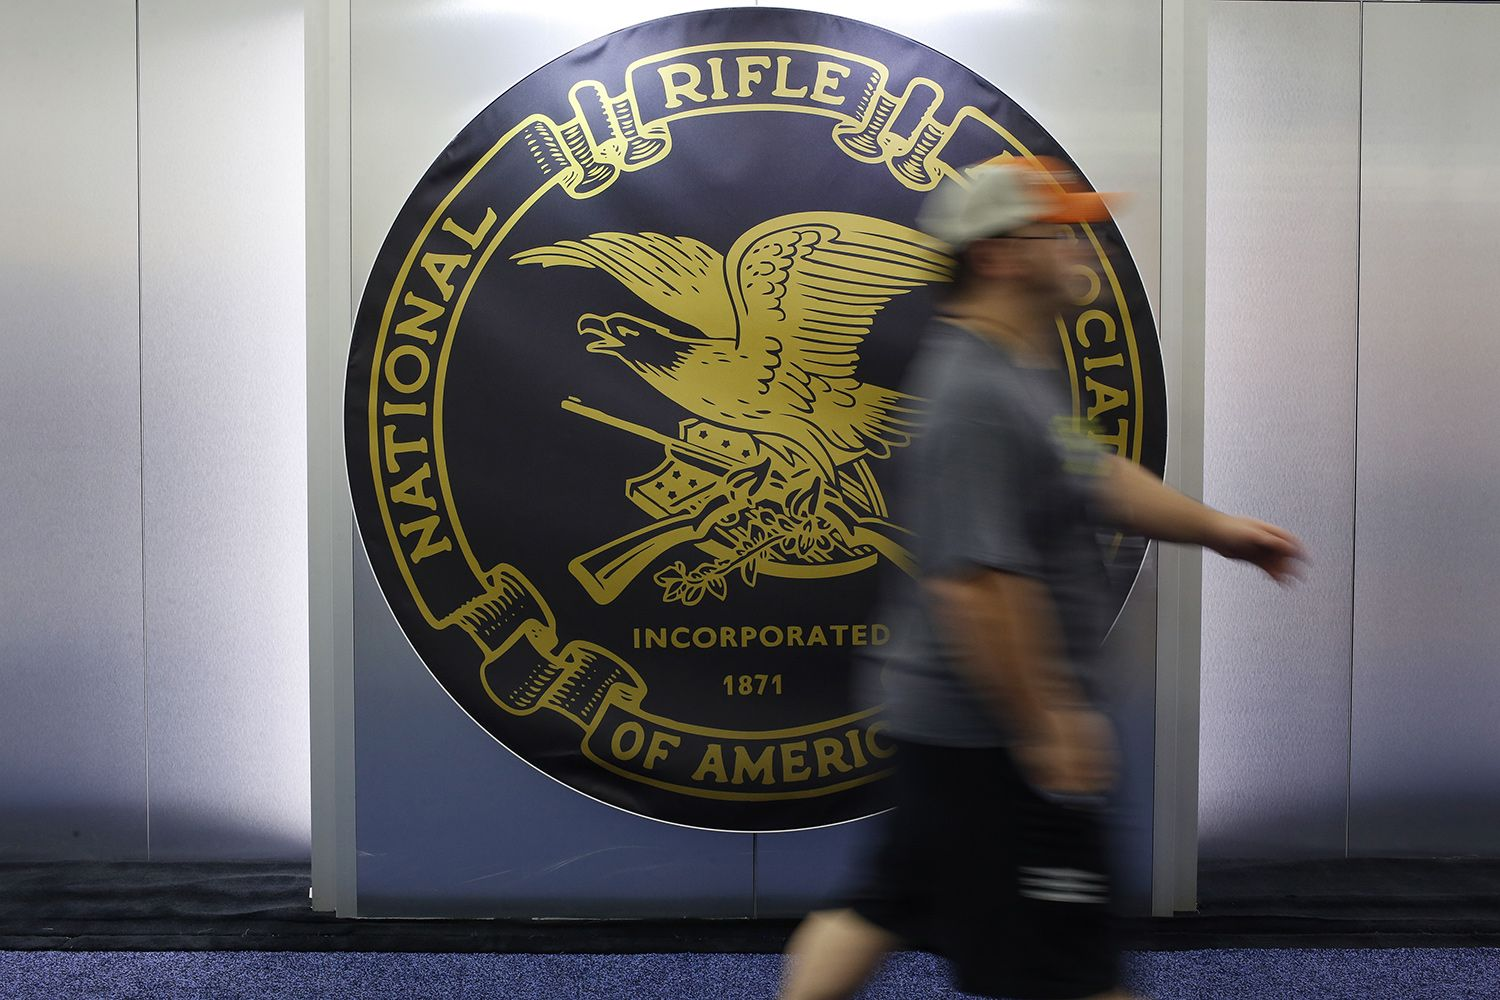 NRA Wins First Round Over L.A. Law It Says Is About Shaming